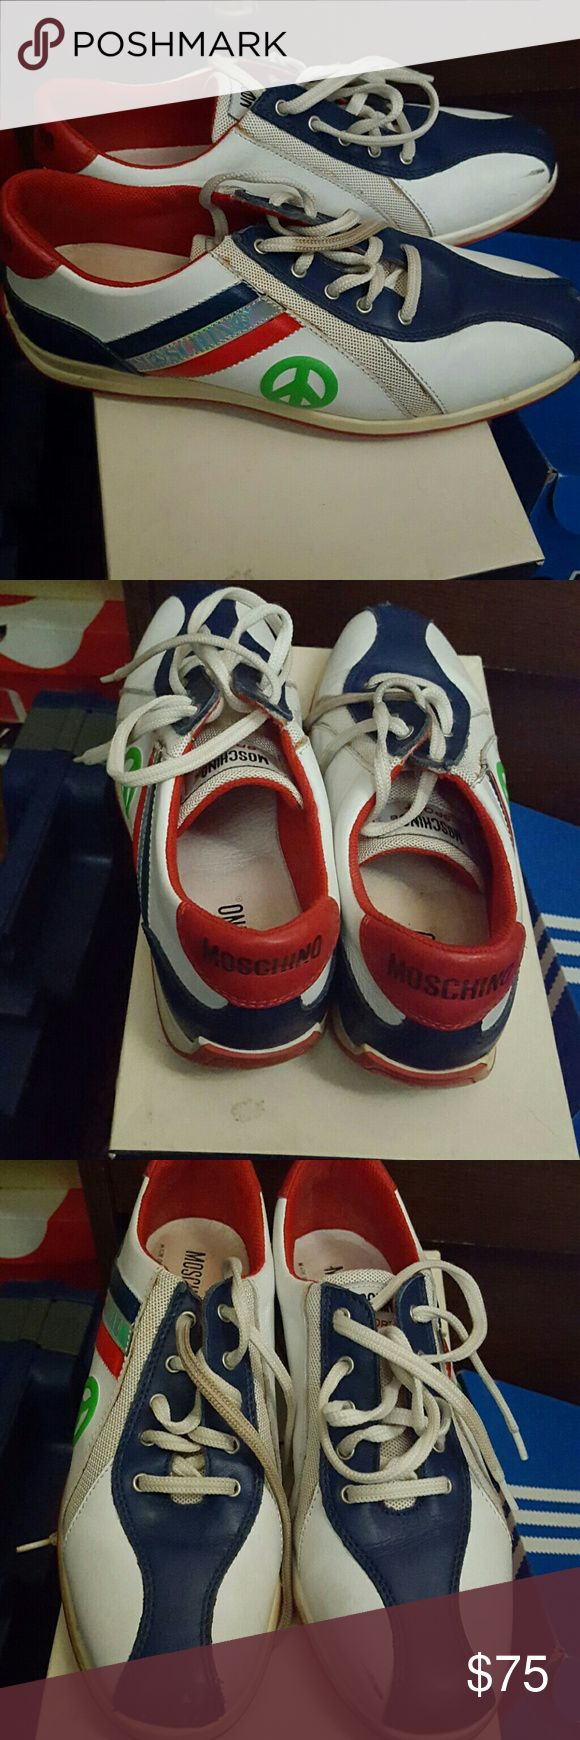 Moschino tennis shoes Red blue white and green classic sneakers moschino Shoes Sneakers